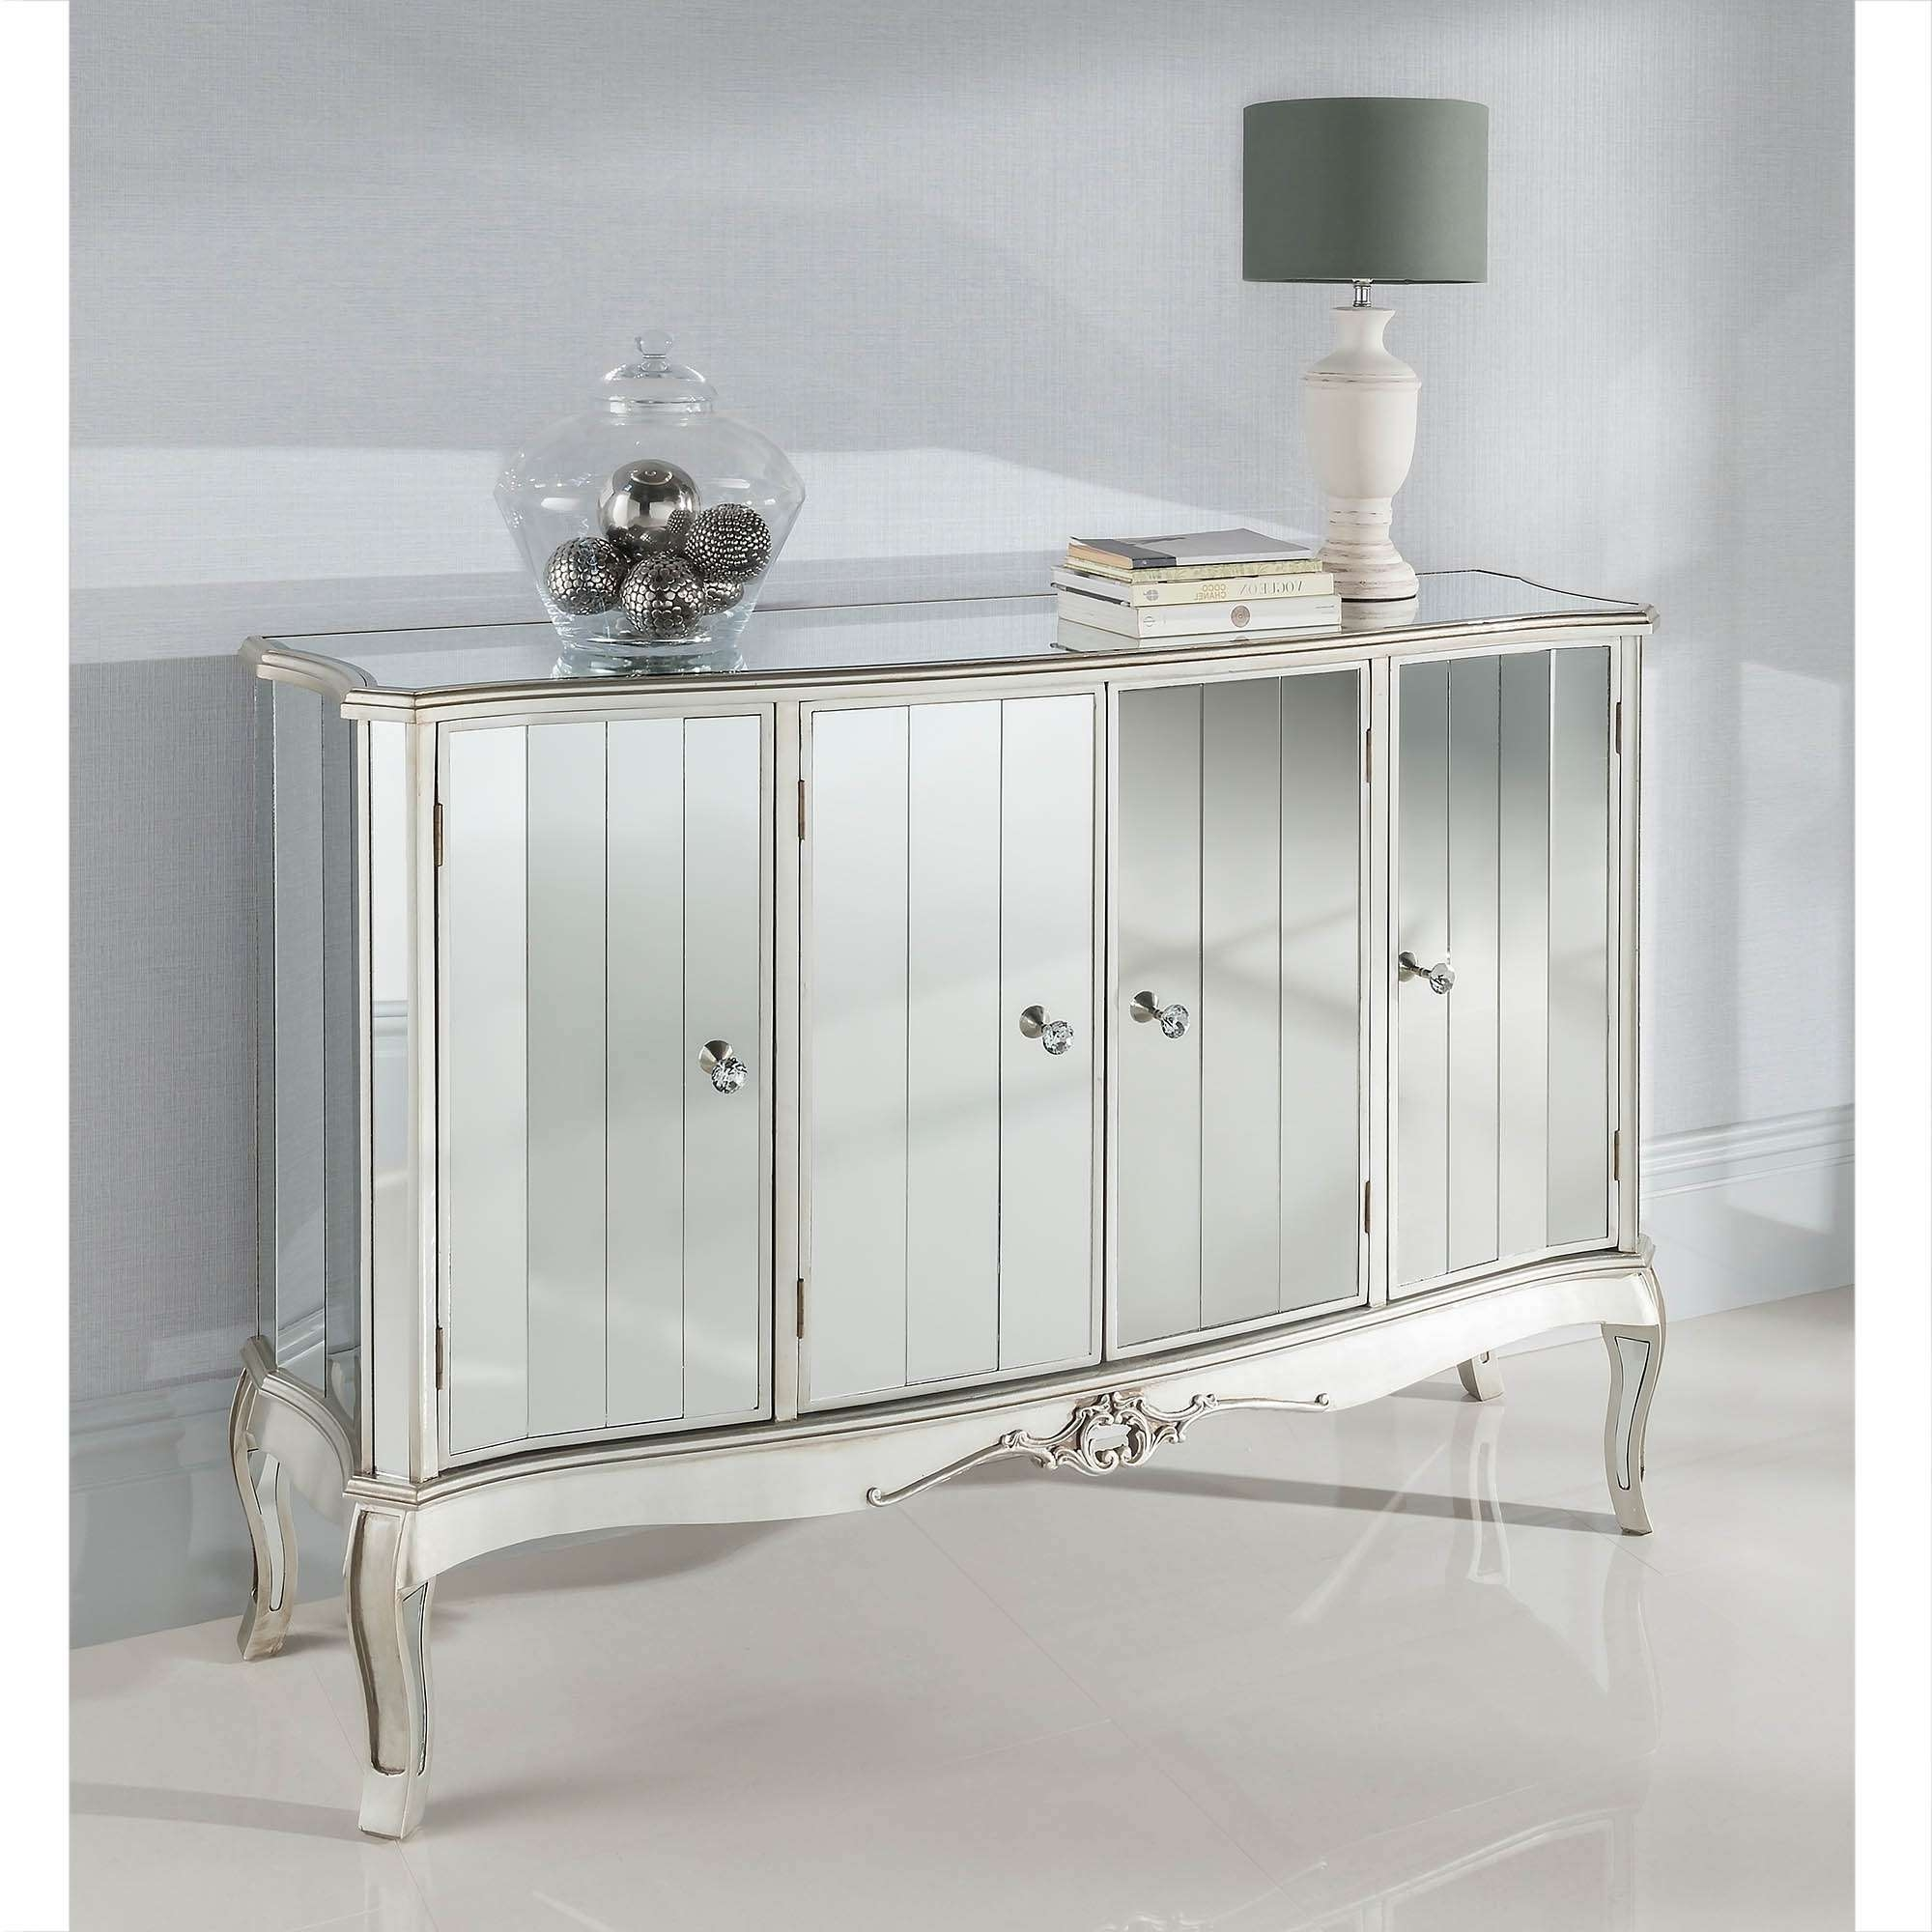 Argente Mirrored Four Door Sideboard | Mirrored Furniture For Mirrored Sideboards (View 5 of 20)